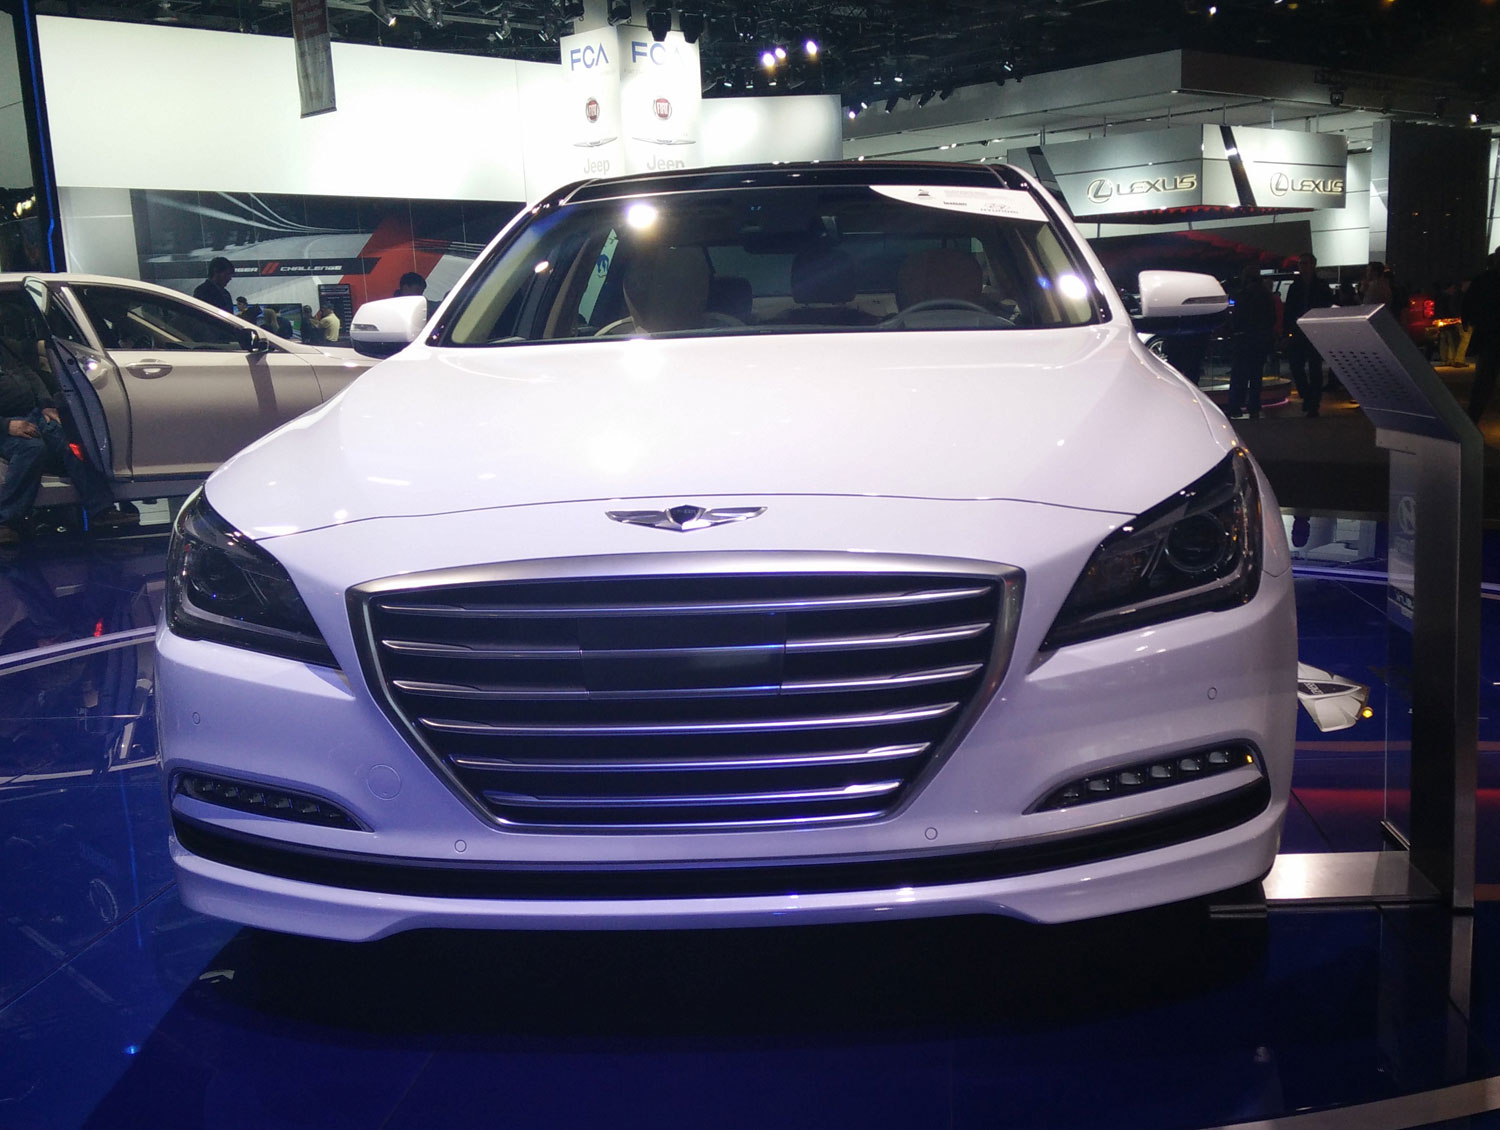 Is the third generation Hyundai Genesis Sedan going to shrink?